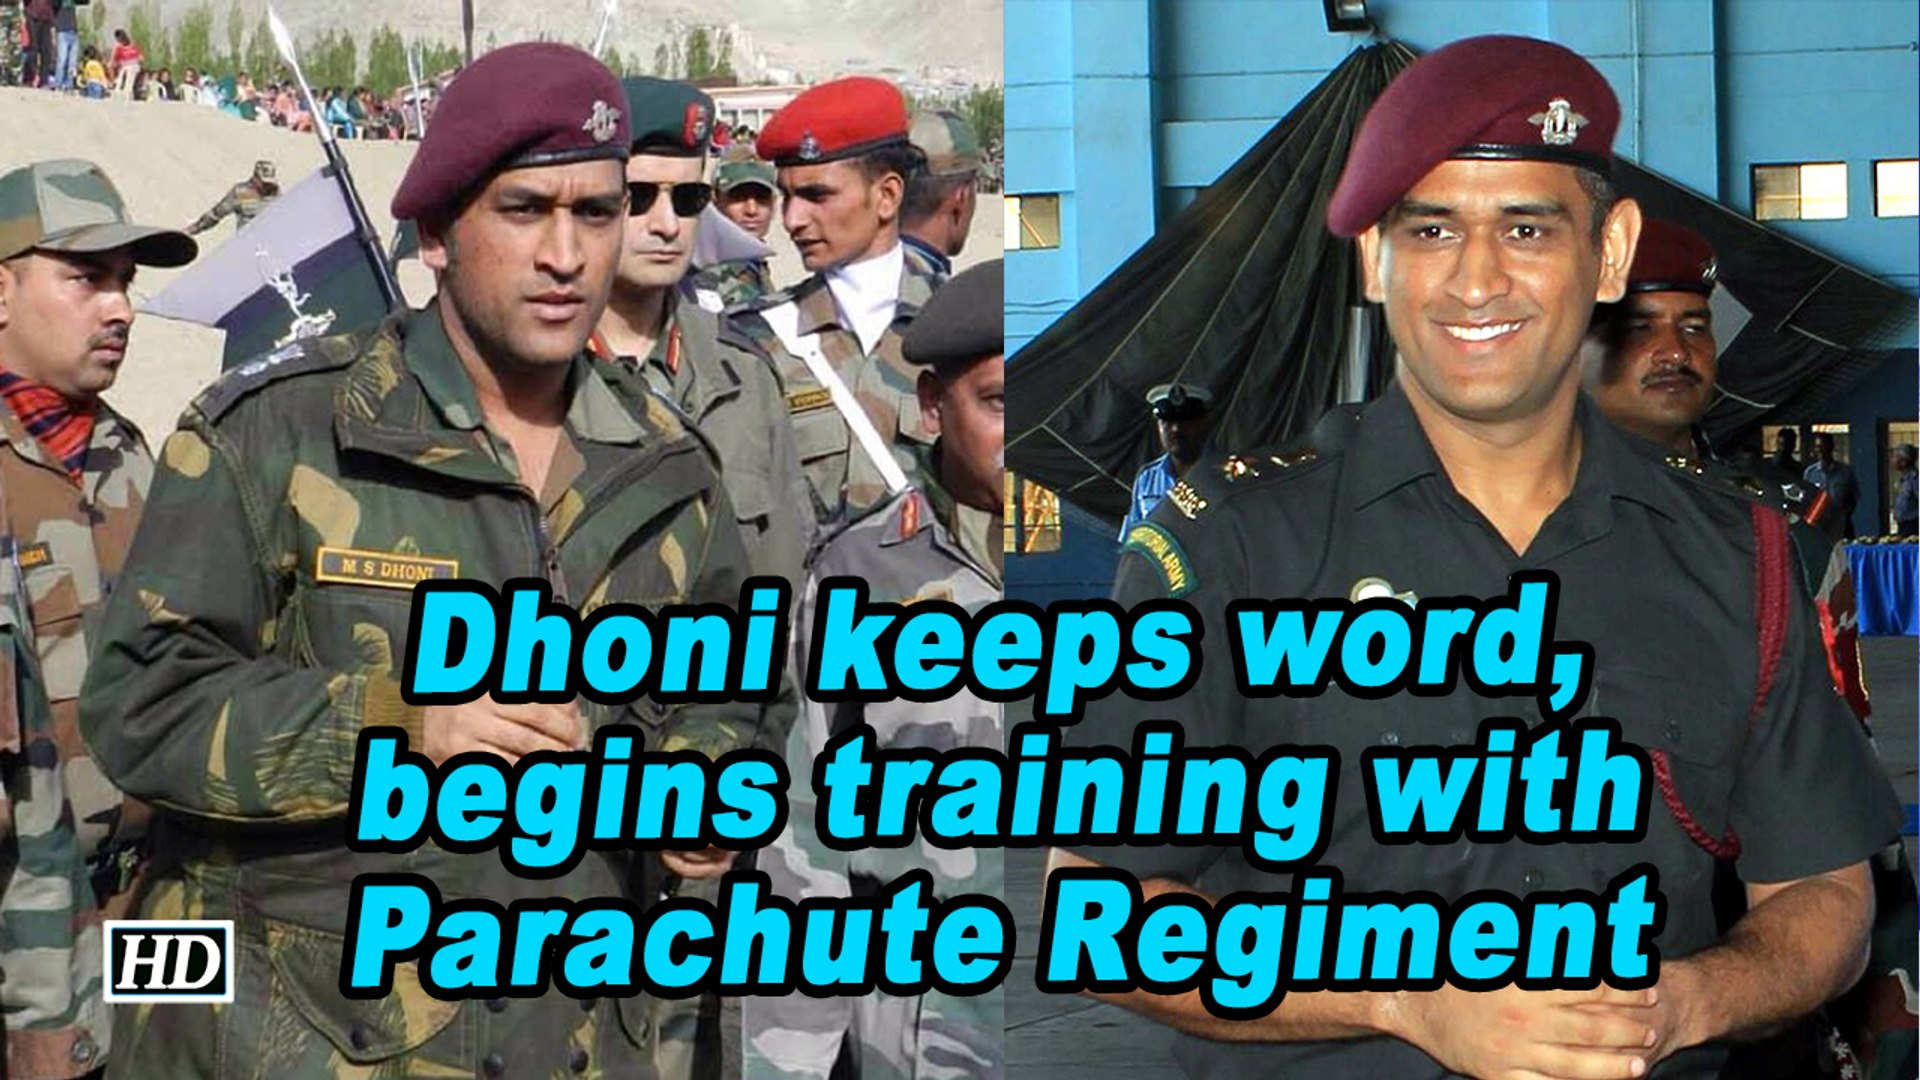 Dhoni keeps word, begins training with Parachute Regiment